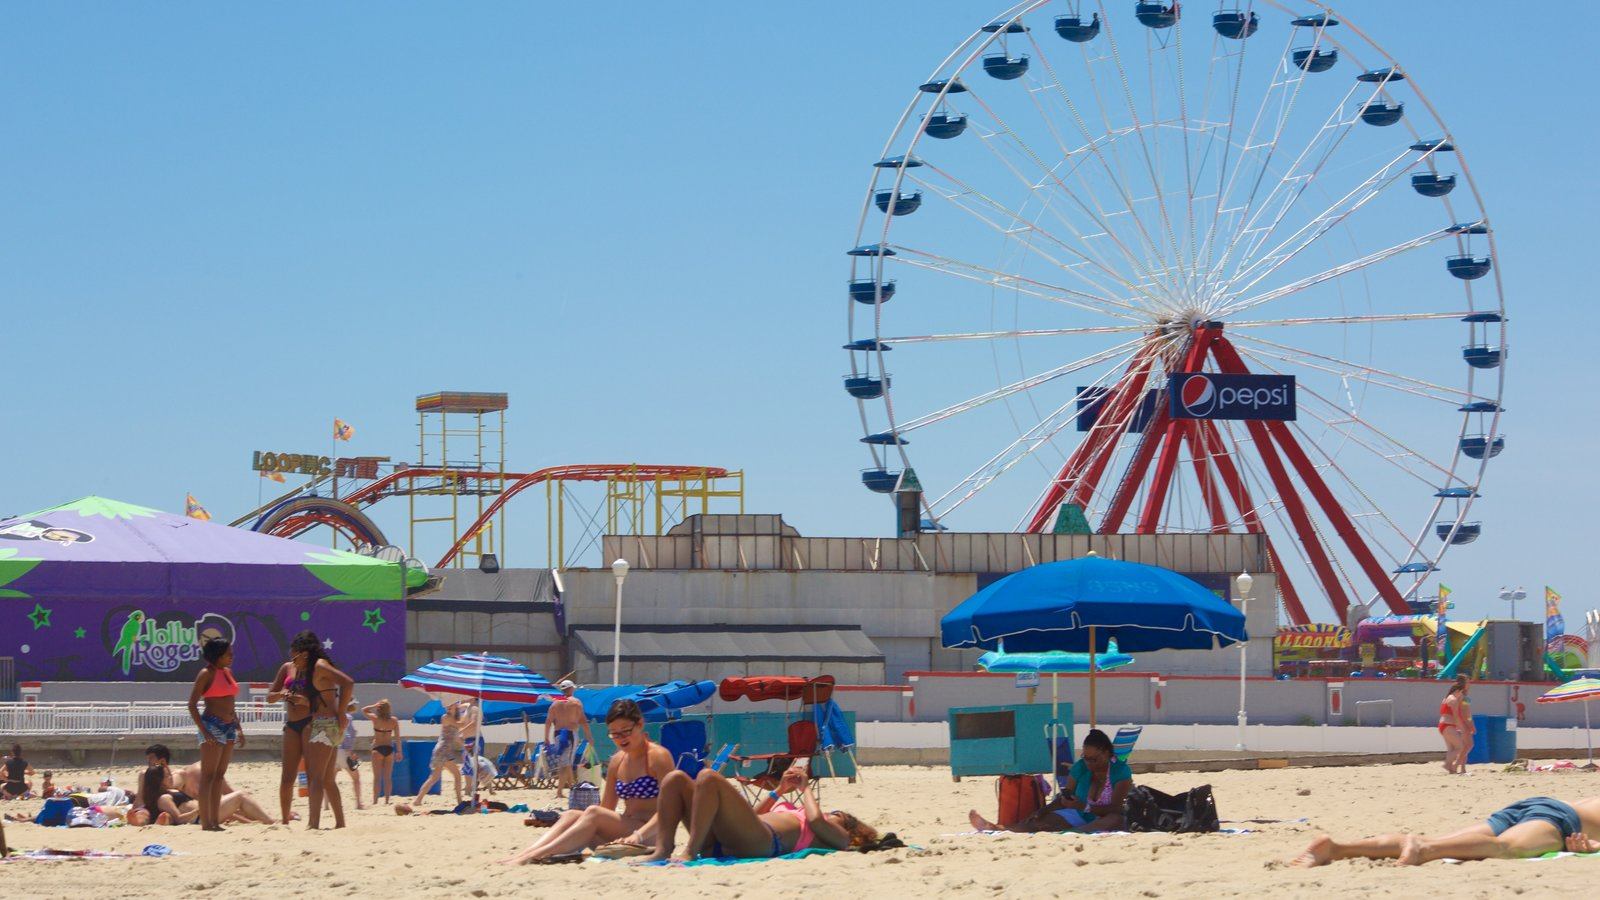 Ocean City Beach which includes rides and a sandy beach as well as a small group of people